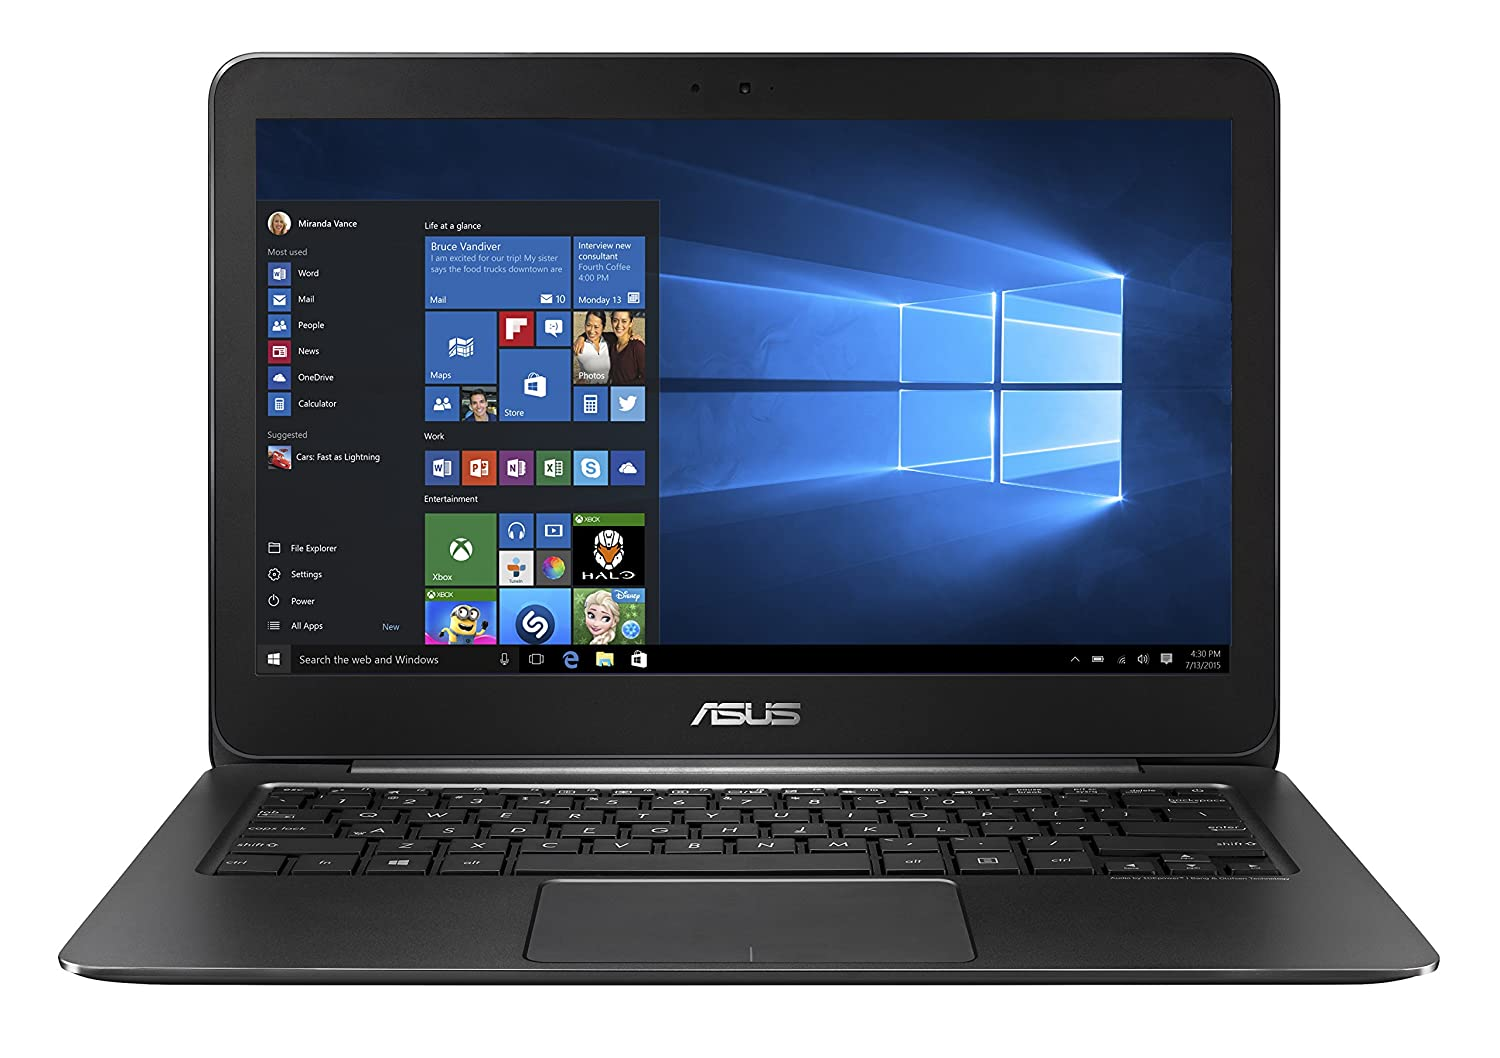 ASUS ZenBook UX305CA 13.3-Inch FHD Laptop, 6th Gen Intel Core M, 8 GB RAM, 256 GB SSD, Windows 10